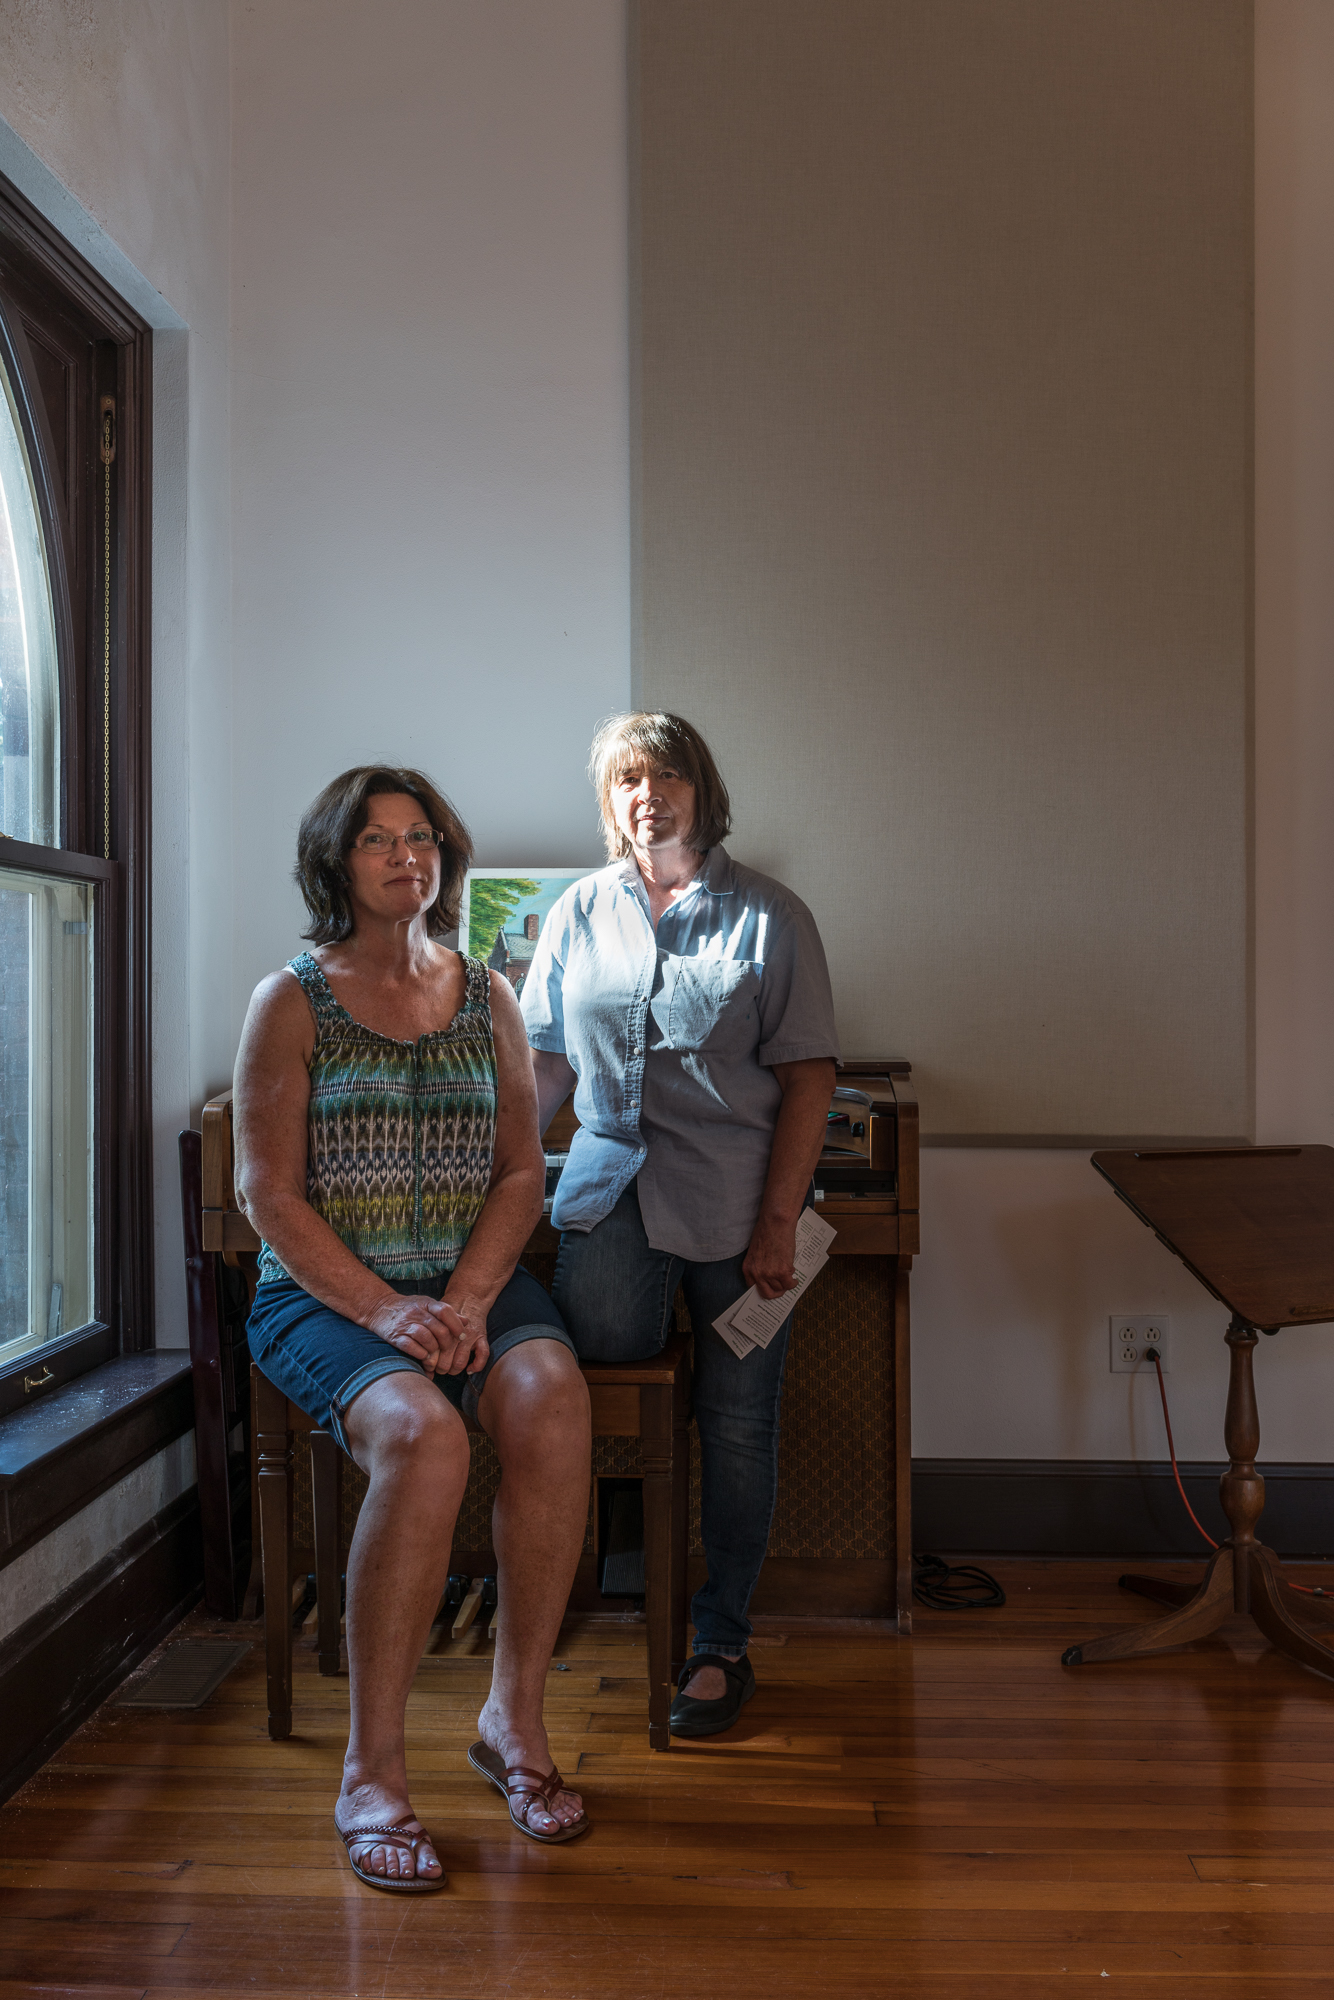 Cathy and Jeanne at the Espenchied Chapel, Mascoutah, Illinois,